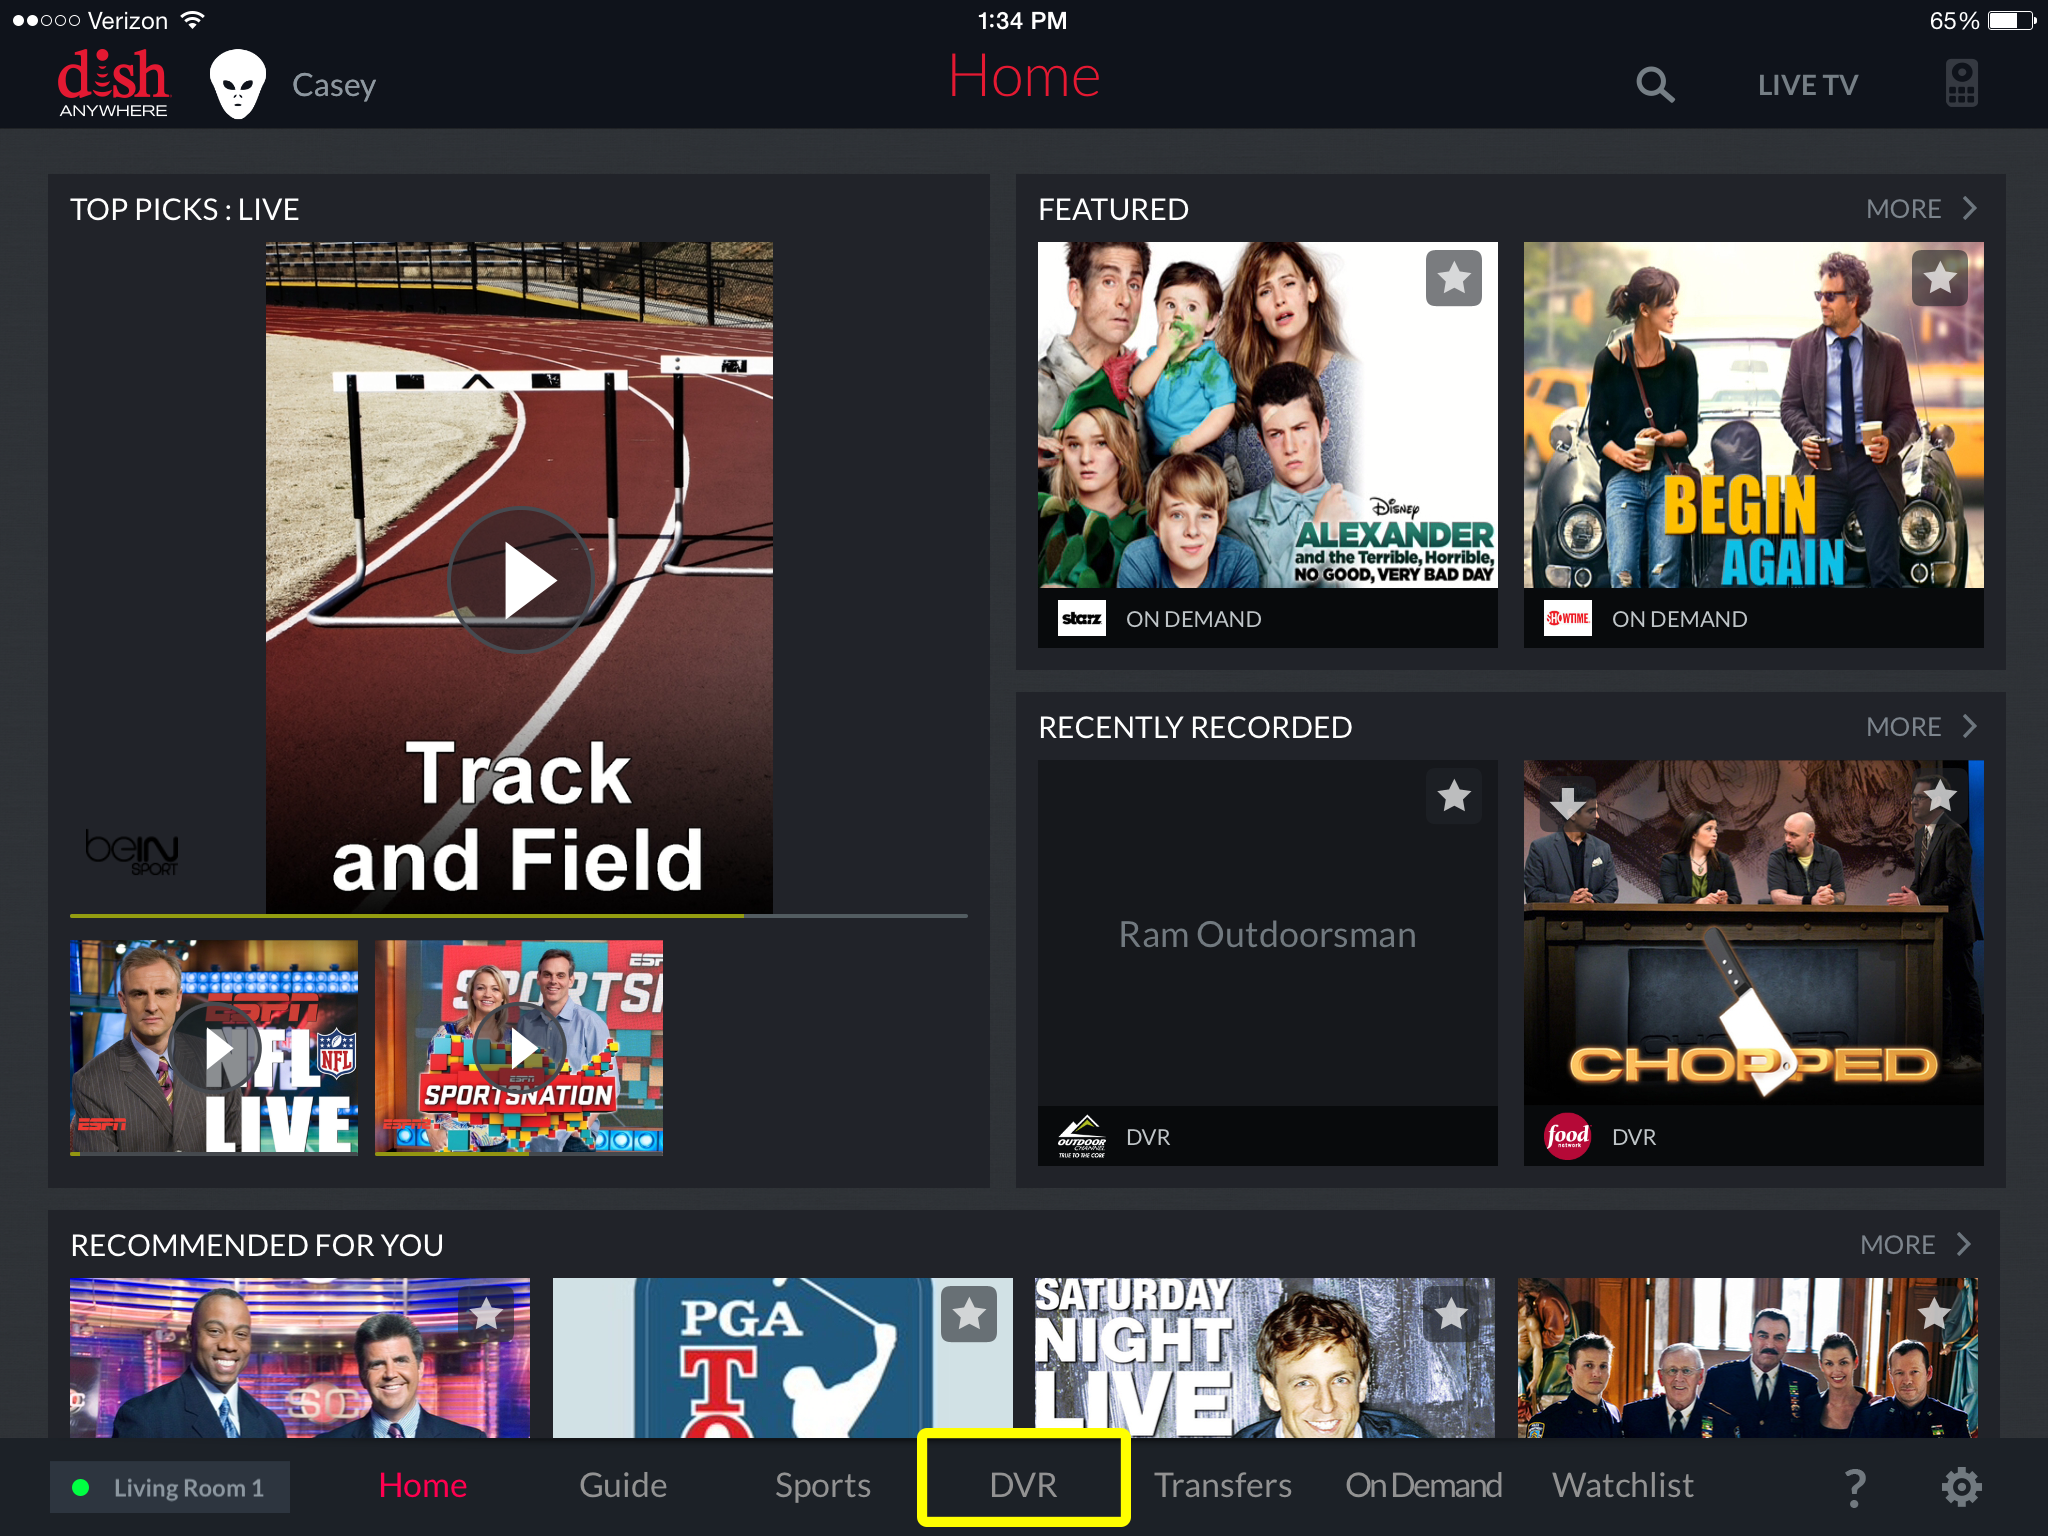 DVR menu option in DISH Anywhere mobile app